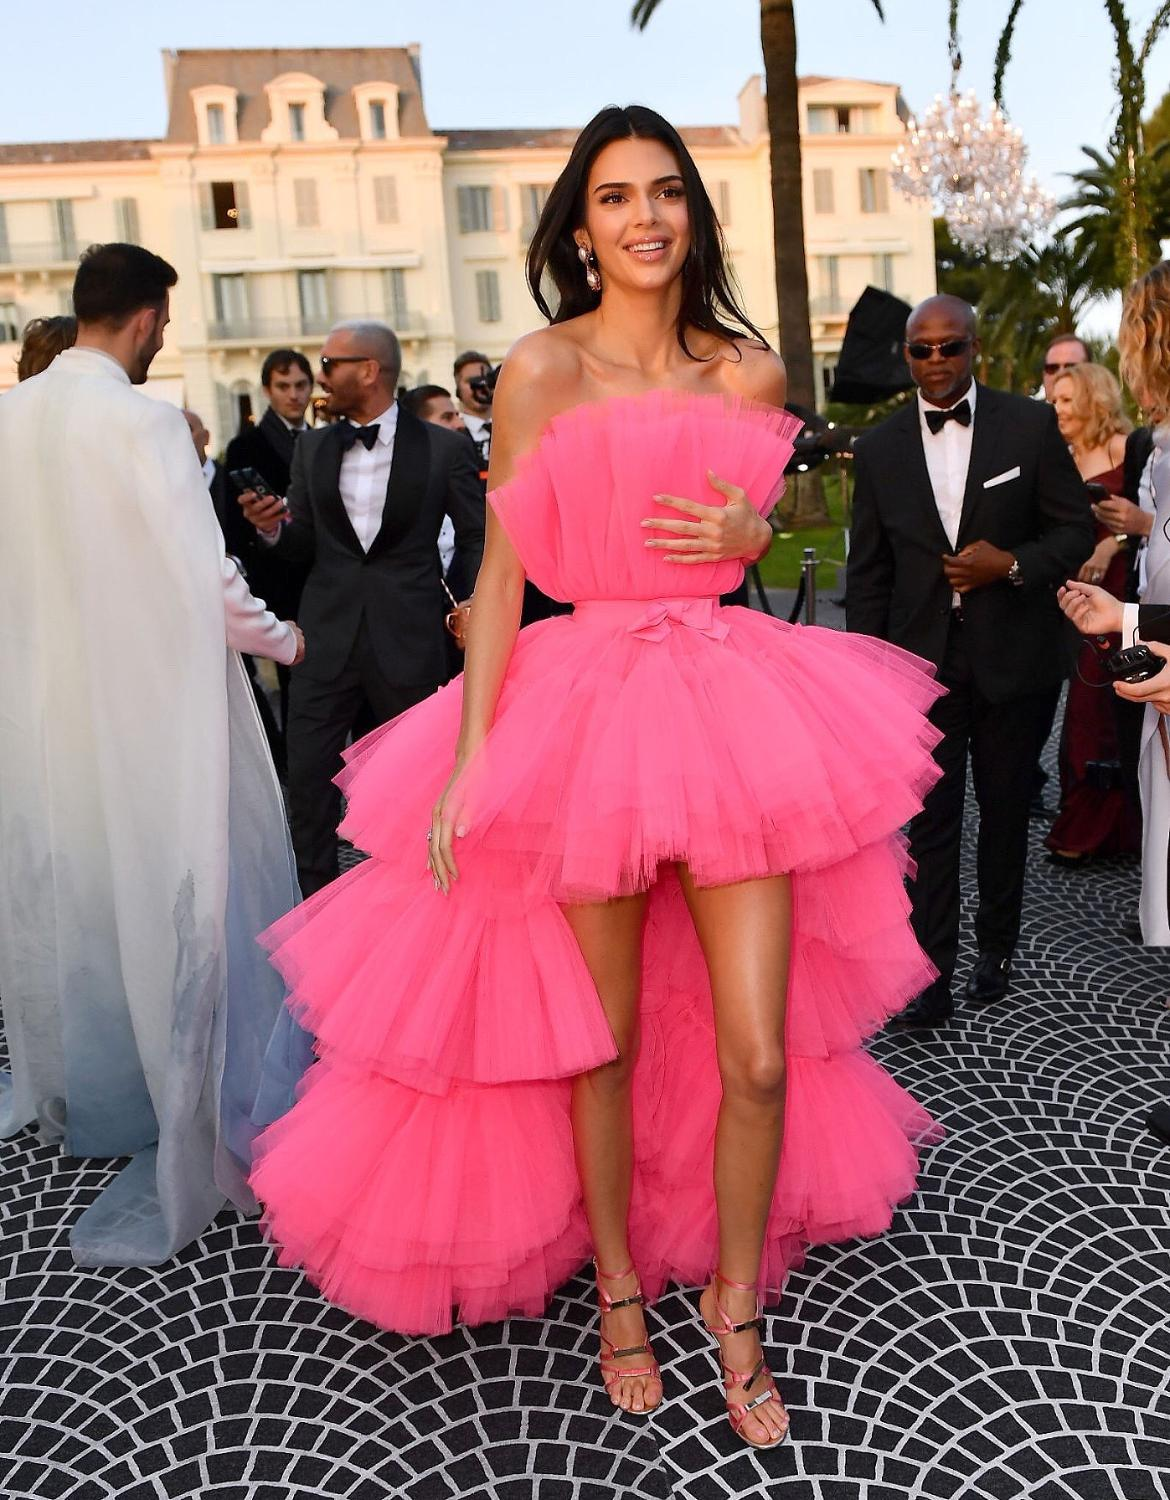 Kendall Jenner Fuchsia Prom Dresses High Low Strapless Tiered Pleat Tulle Evening Celebrity Gowns 2021 Formal Party Dresses New